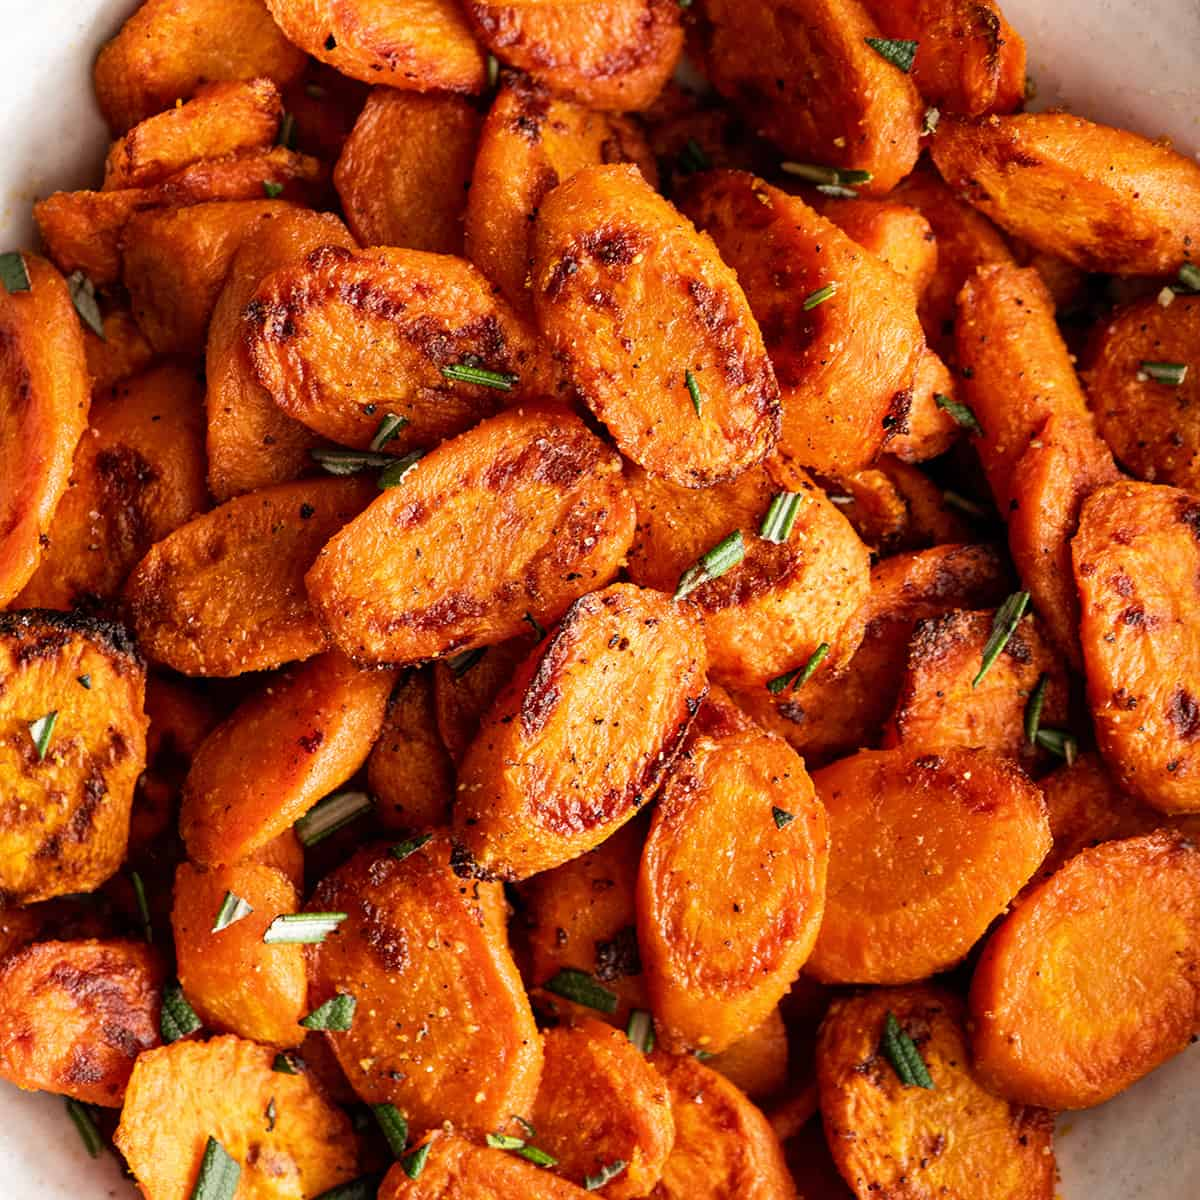 up close overhead view of Oven Roasted Carrots in a bowl garnished with herbs